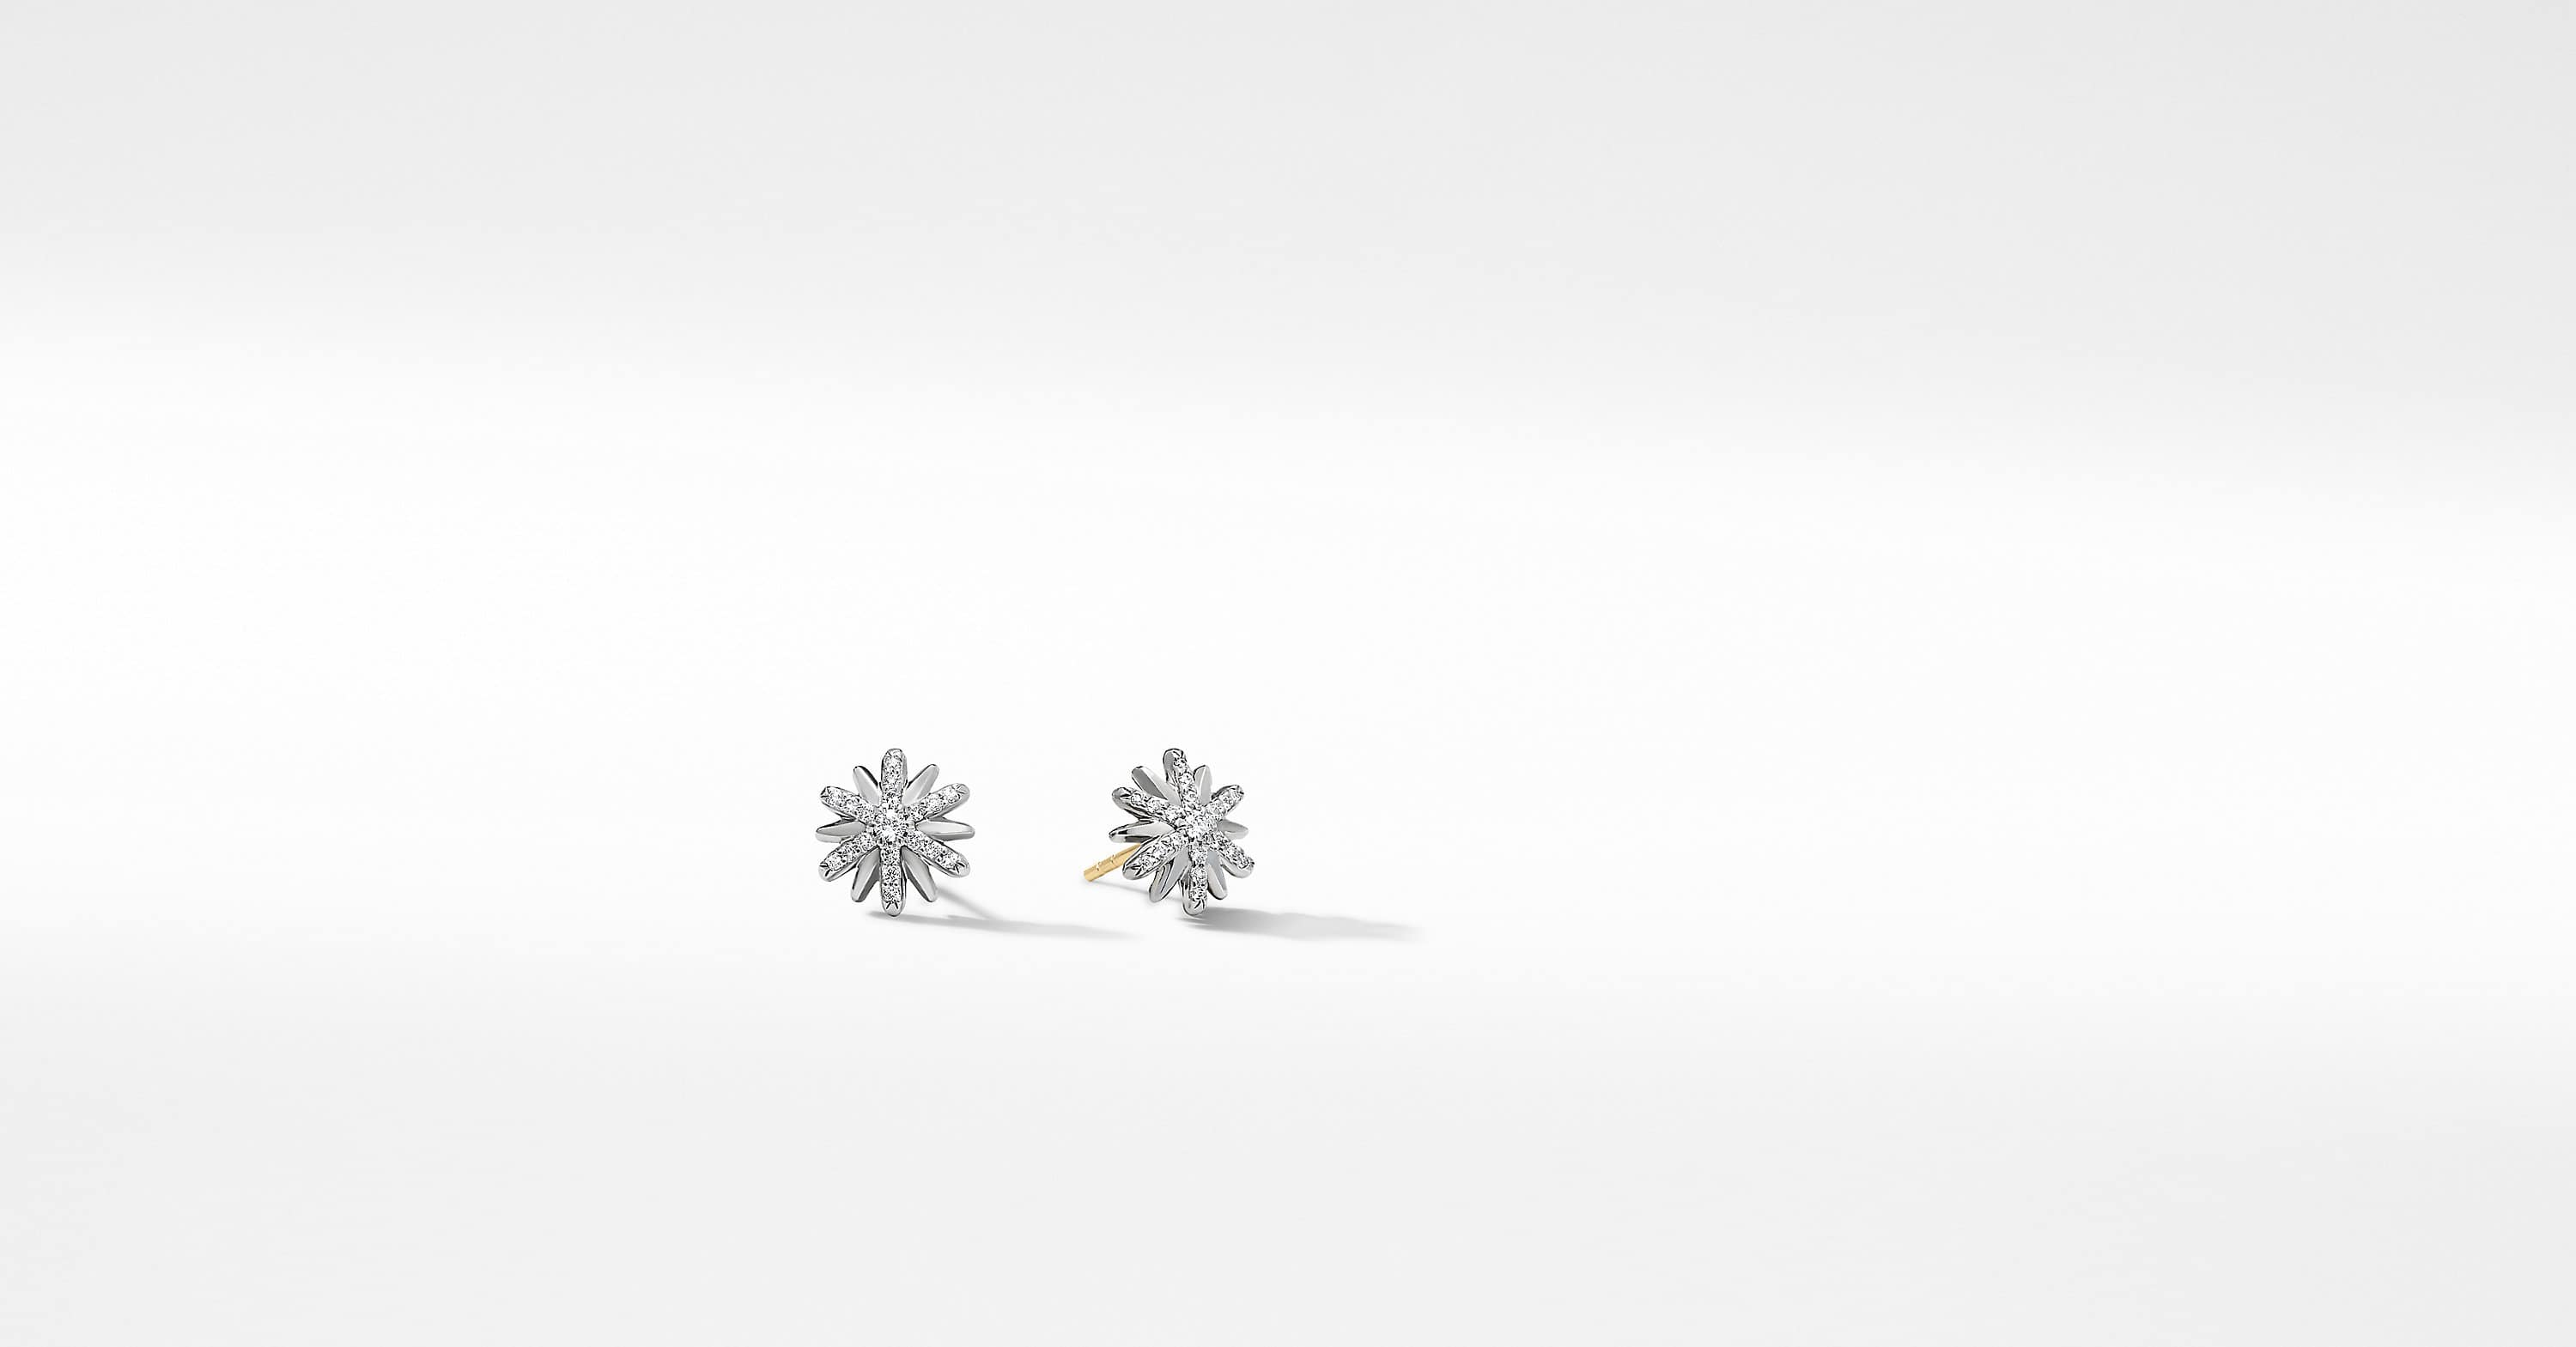 Petite Starburst Stud Earrings with Diamonds, 10mm